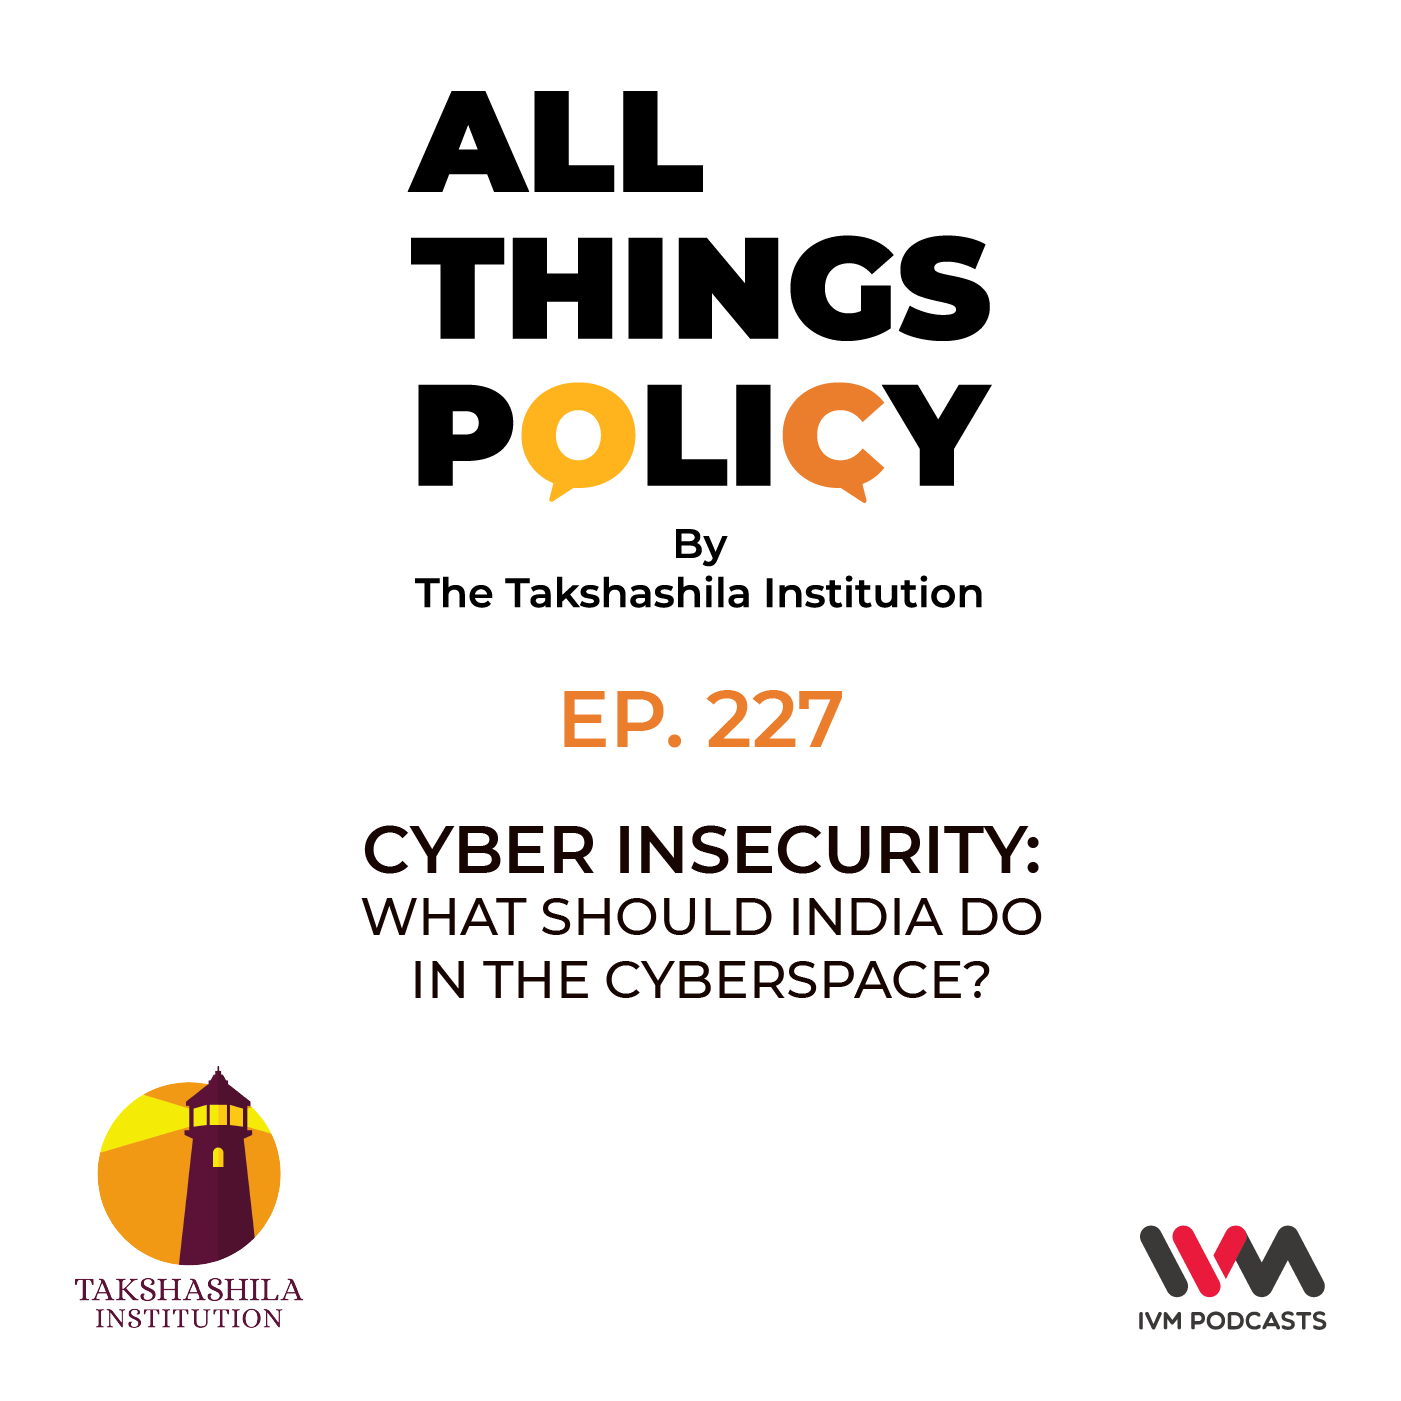 Ep. 227: Cyber Insecurity: What should India do in cyberspace?